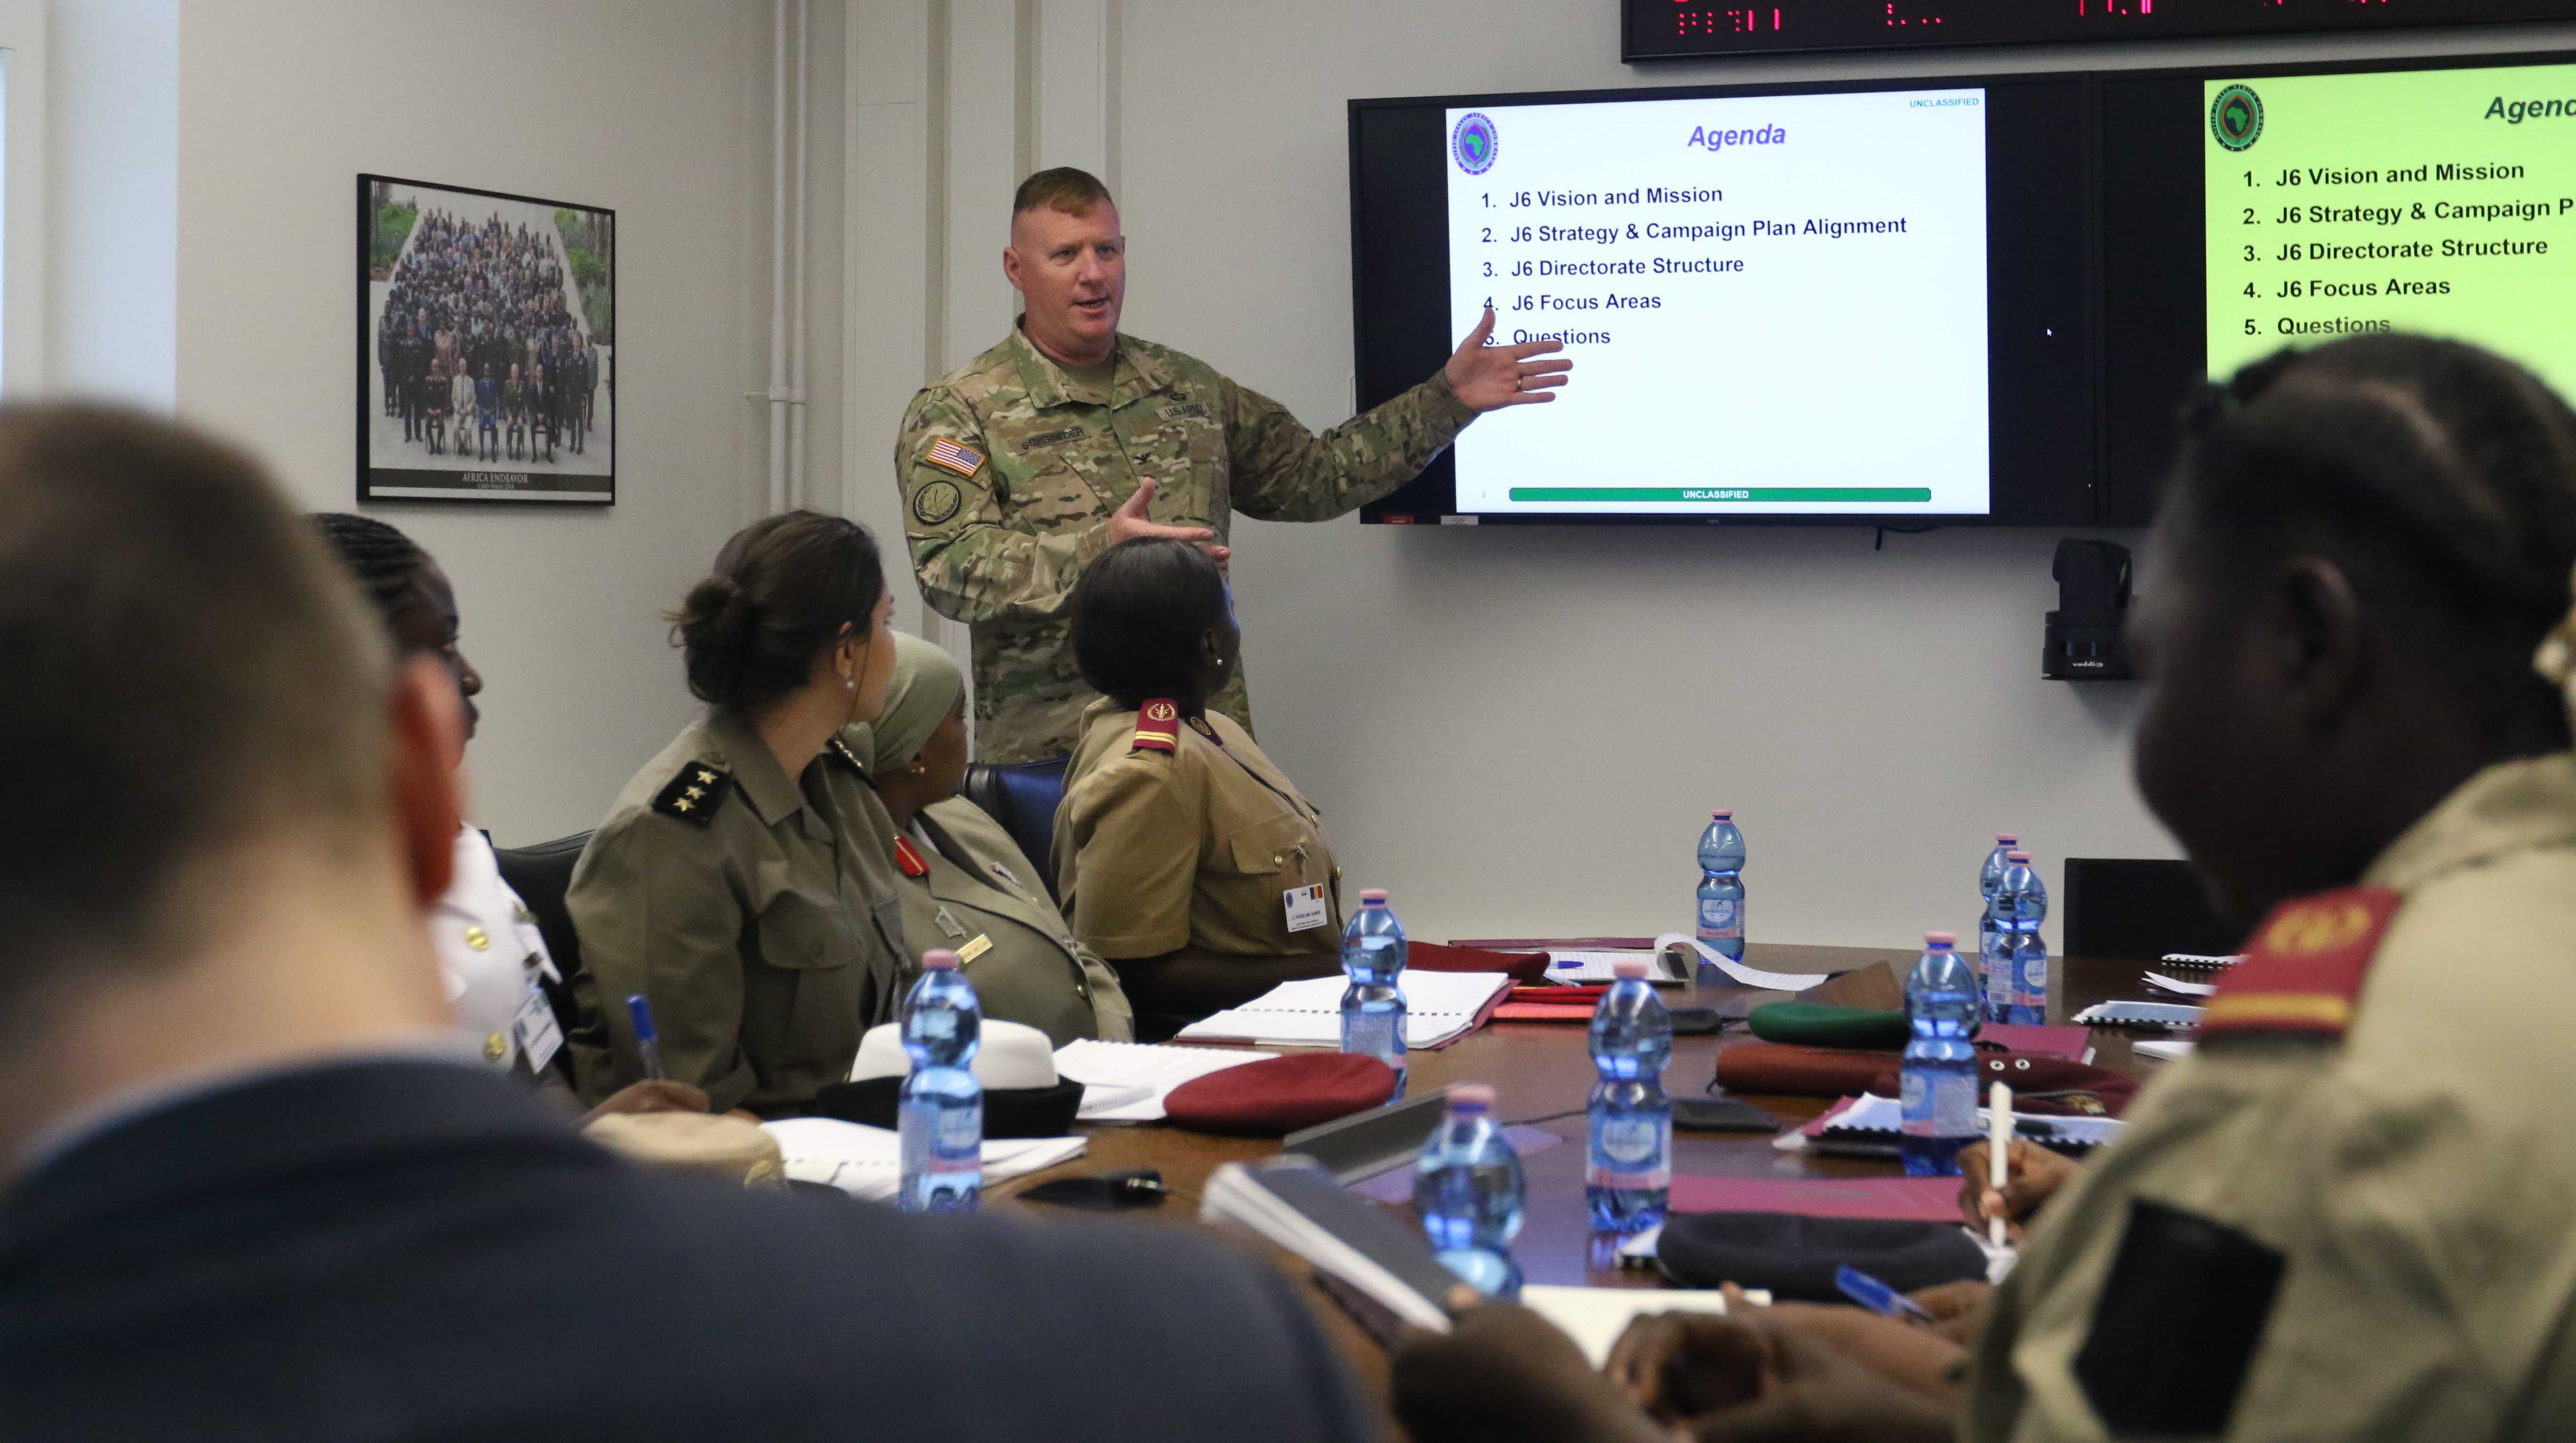 Army Col. Jeffrey Schroeder, Director of C4 Systems-J6, U.S. Africa Command, speaks to the participants of the AFRICOM Women's Communication Symposium, at Kelly Barracks, Stuttgart, Germany, July 29, 2019.